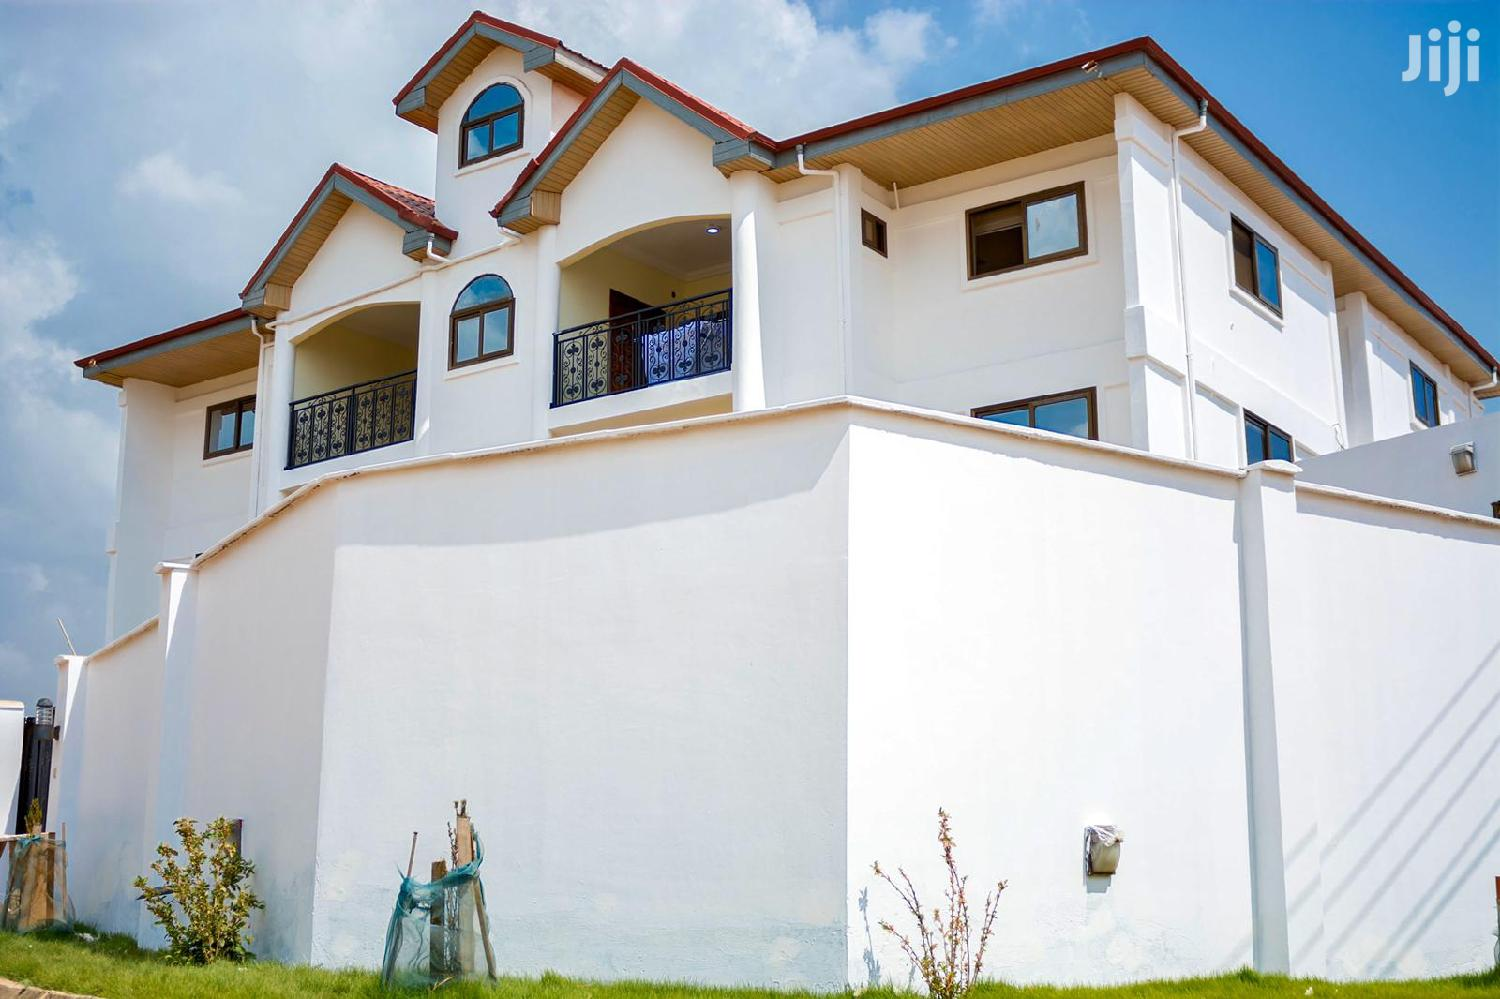 2 Bedrooms Apartment For Short Term Fully Finished | Houses & Apartments For Rent for sale in East Legon, Greater Accra, Ghana